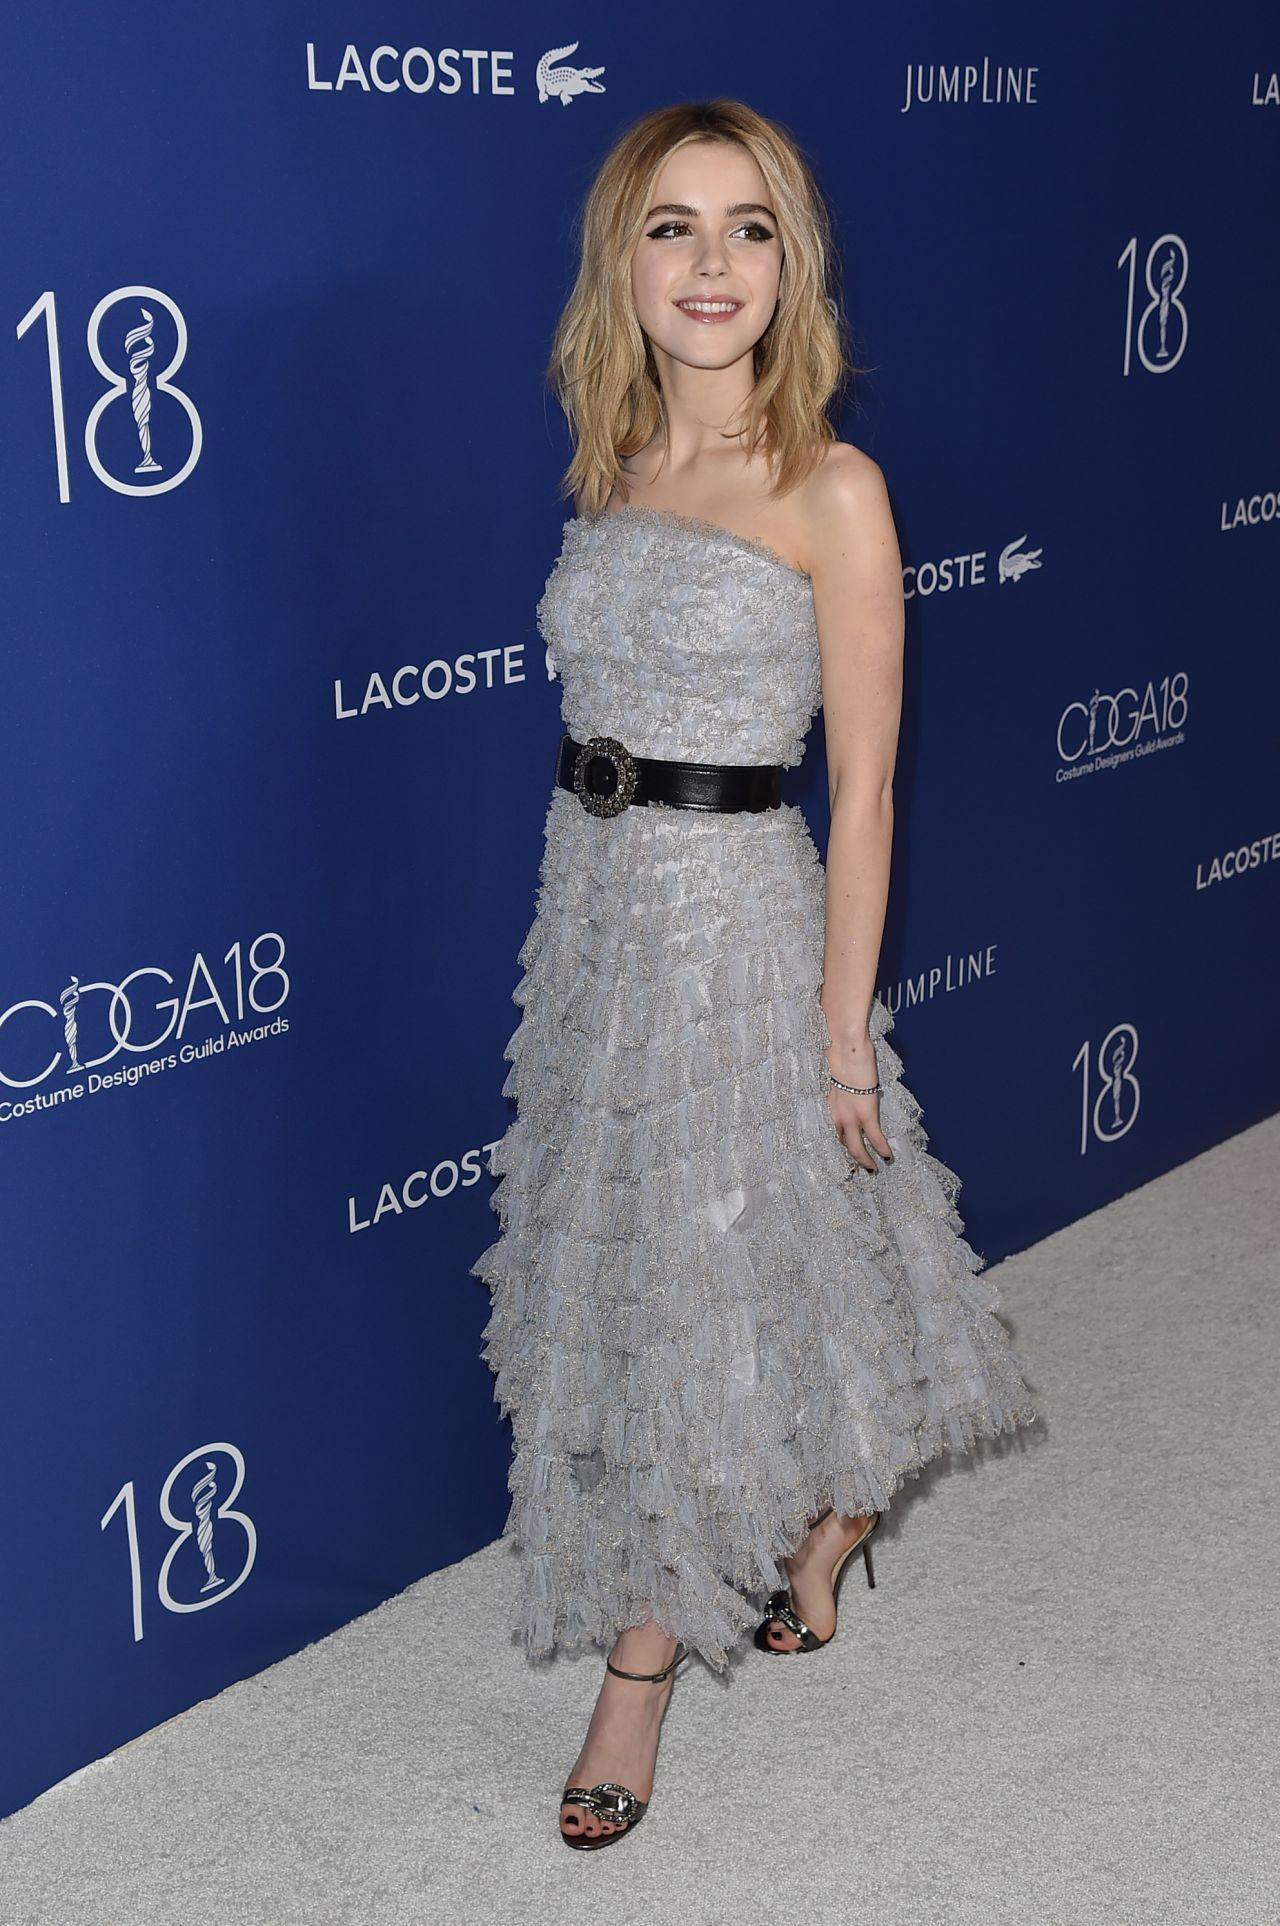 kiernan-shipka-costume-designers-guild-awards-2016-with-lacoste-in-beverly-hills-11